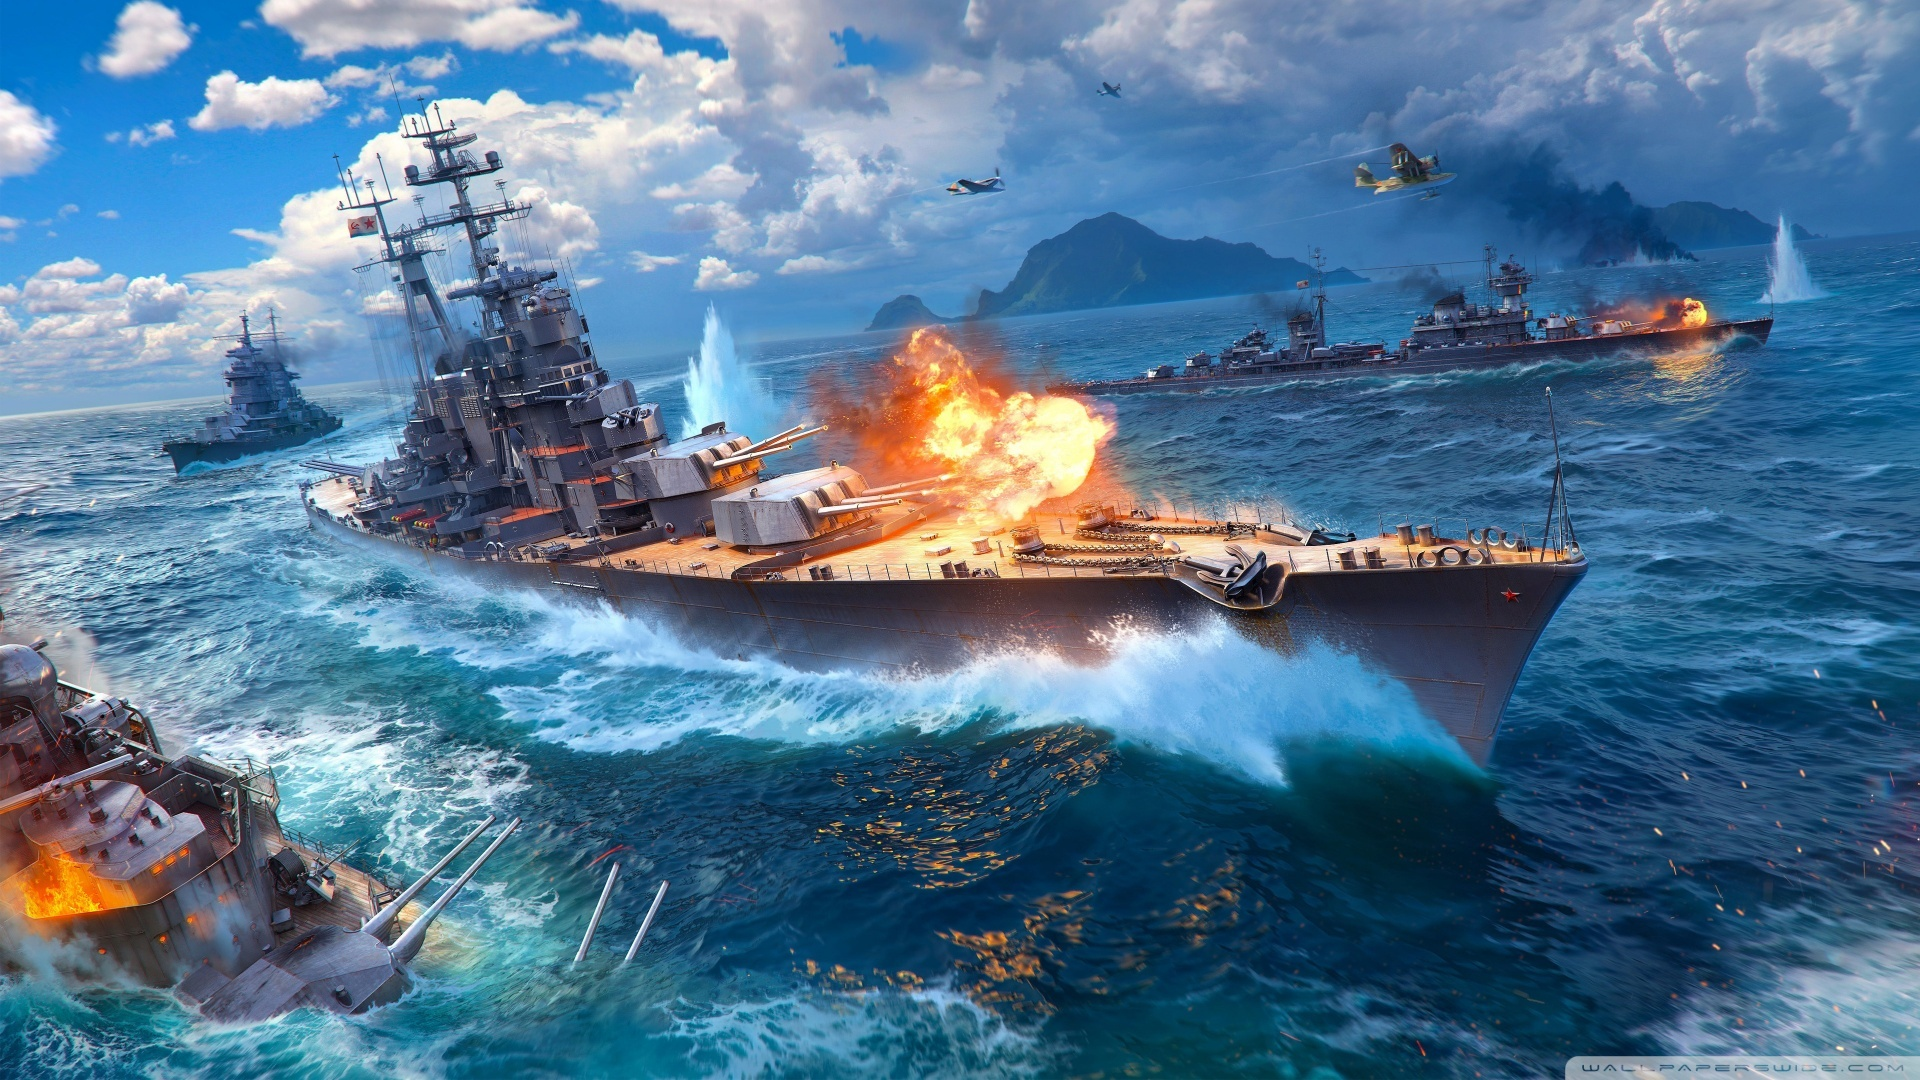 world_of_warships_3-wallpaper-1920x1080